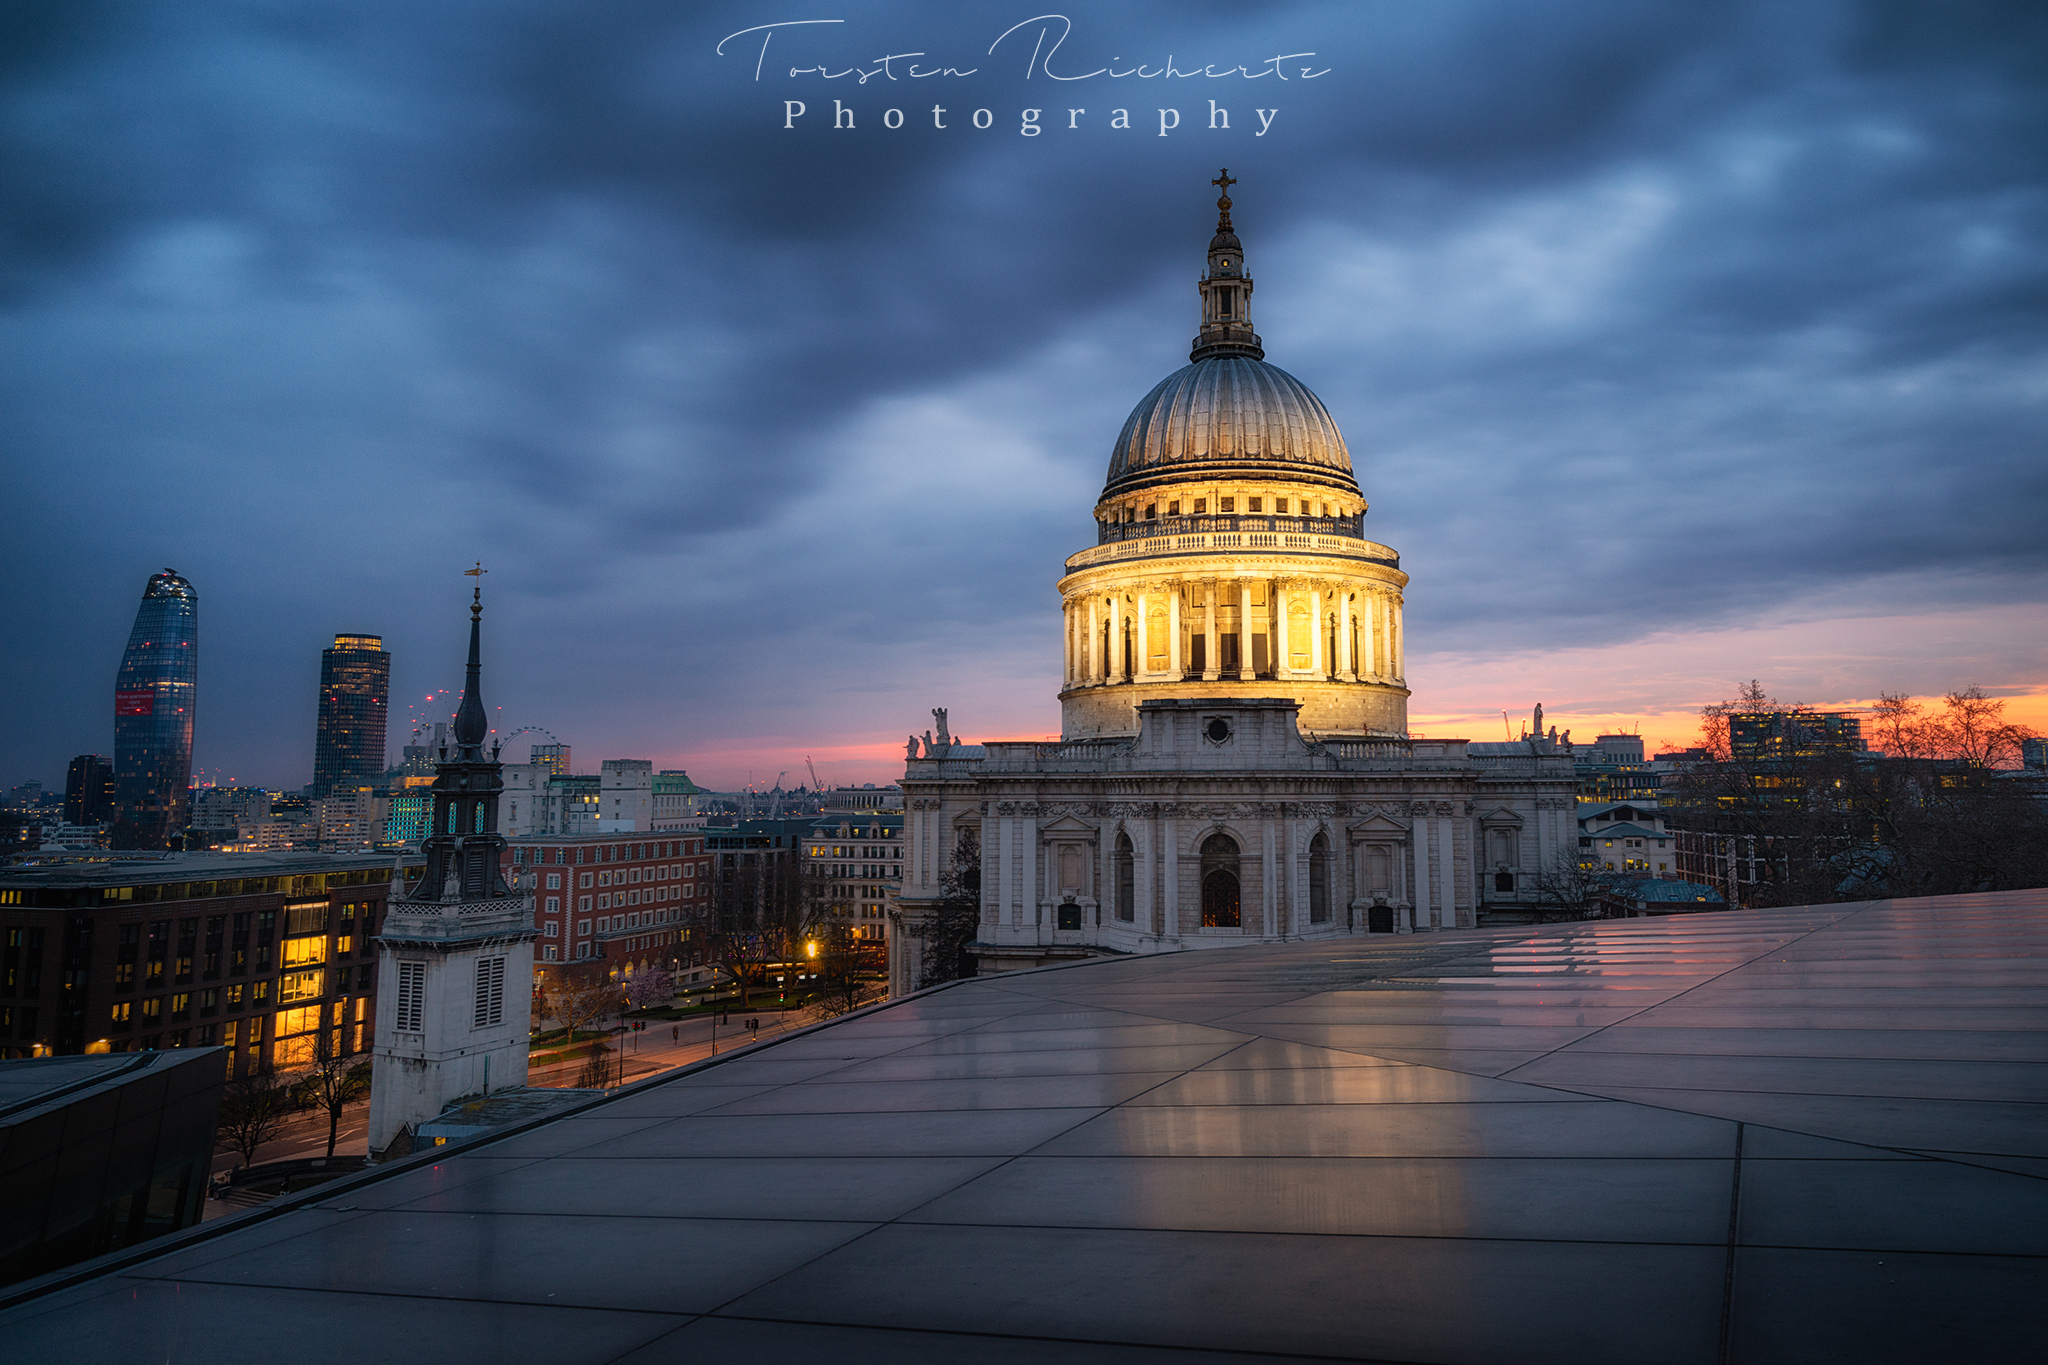 St. Pauls Cathedral from One New Change, United Kingdom